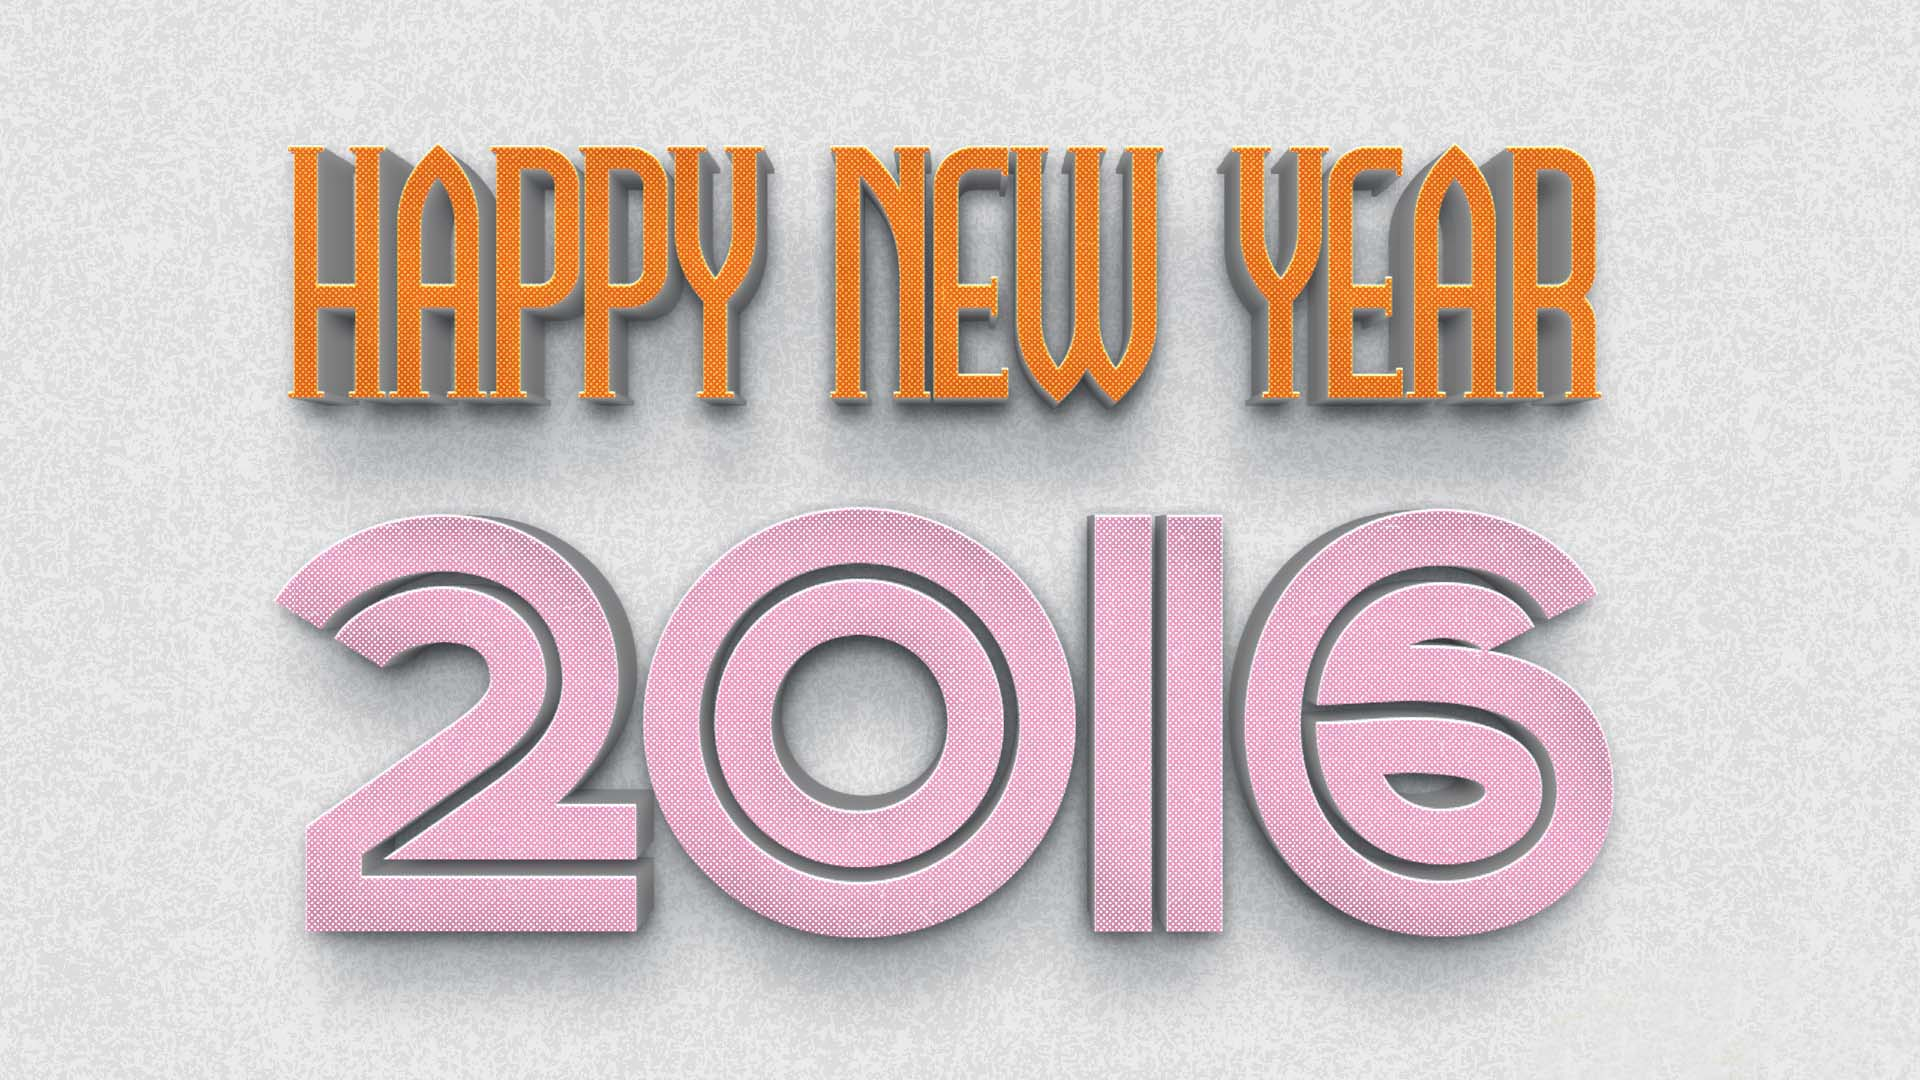 Happy-New-Year-2016-Wallpaper-Large-Size